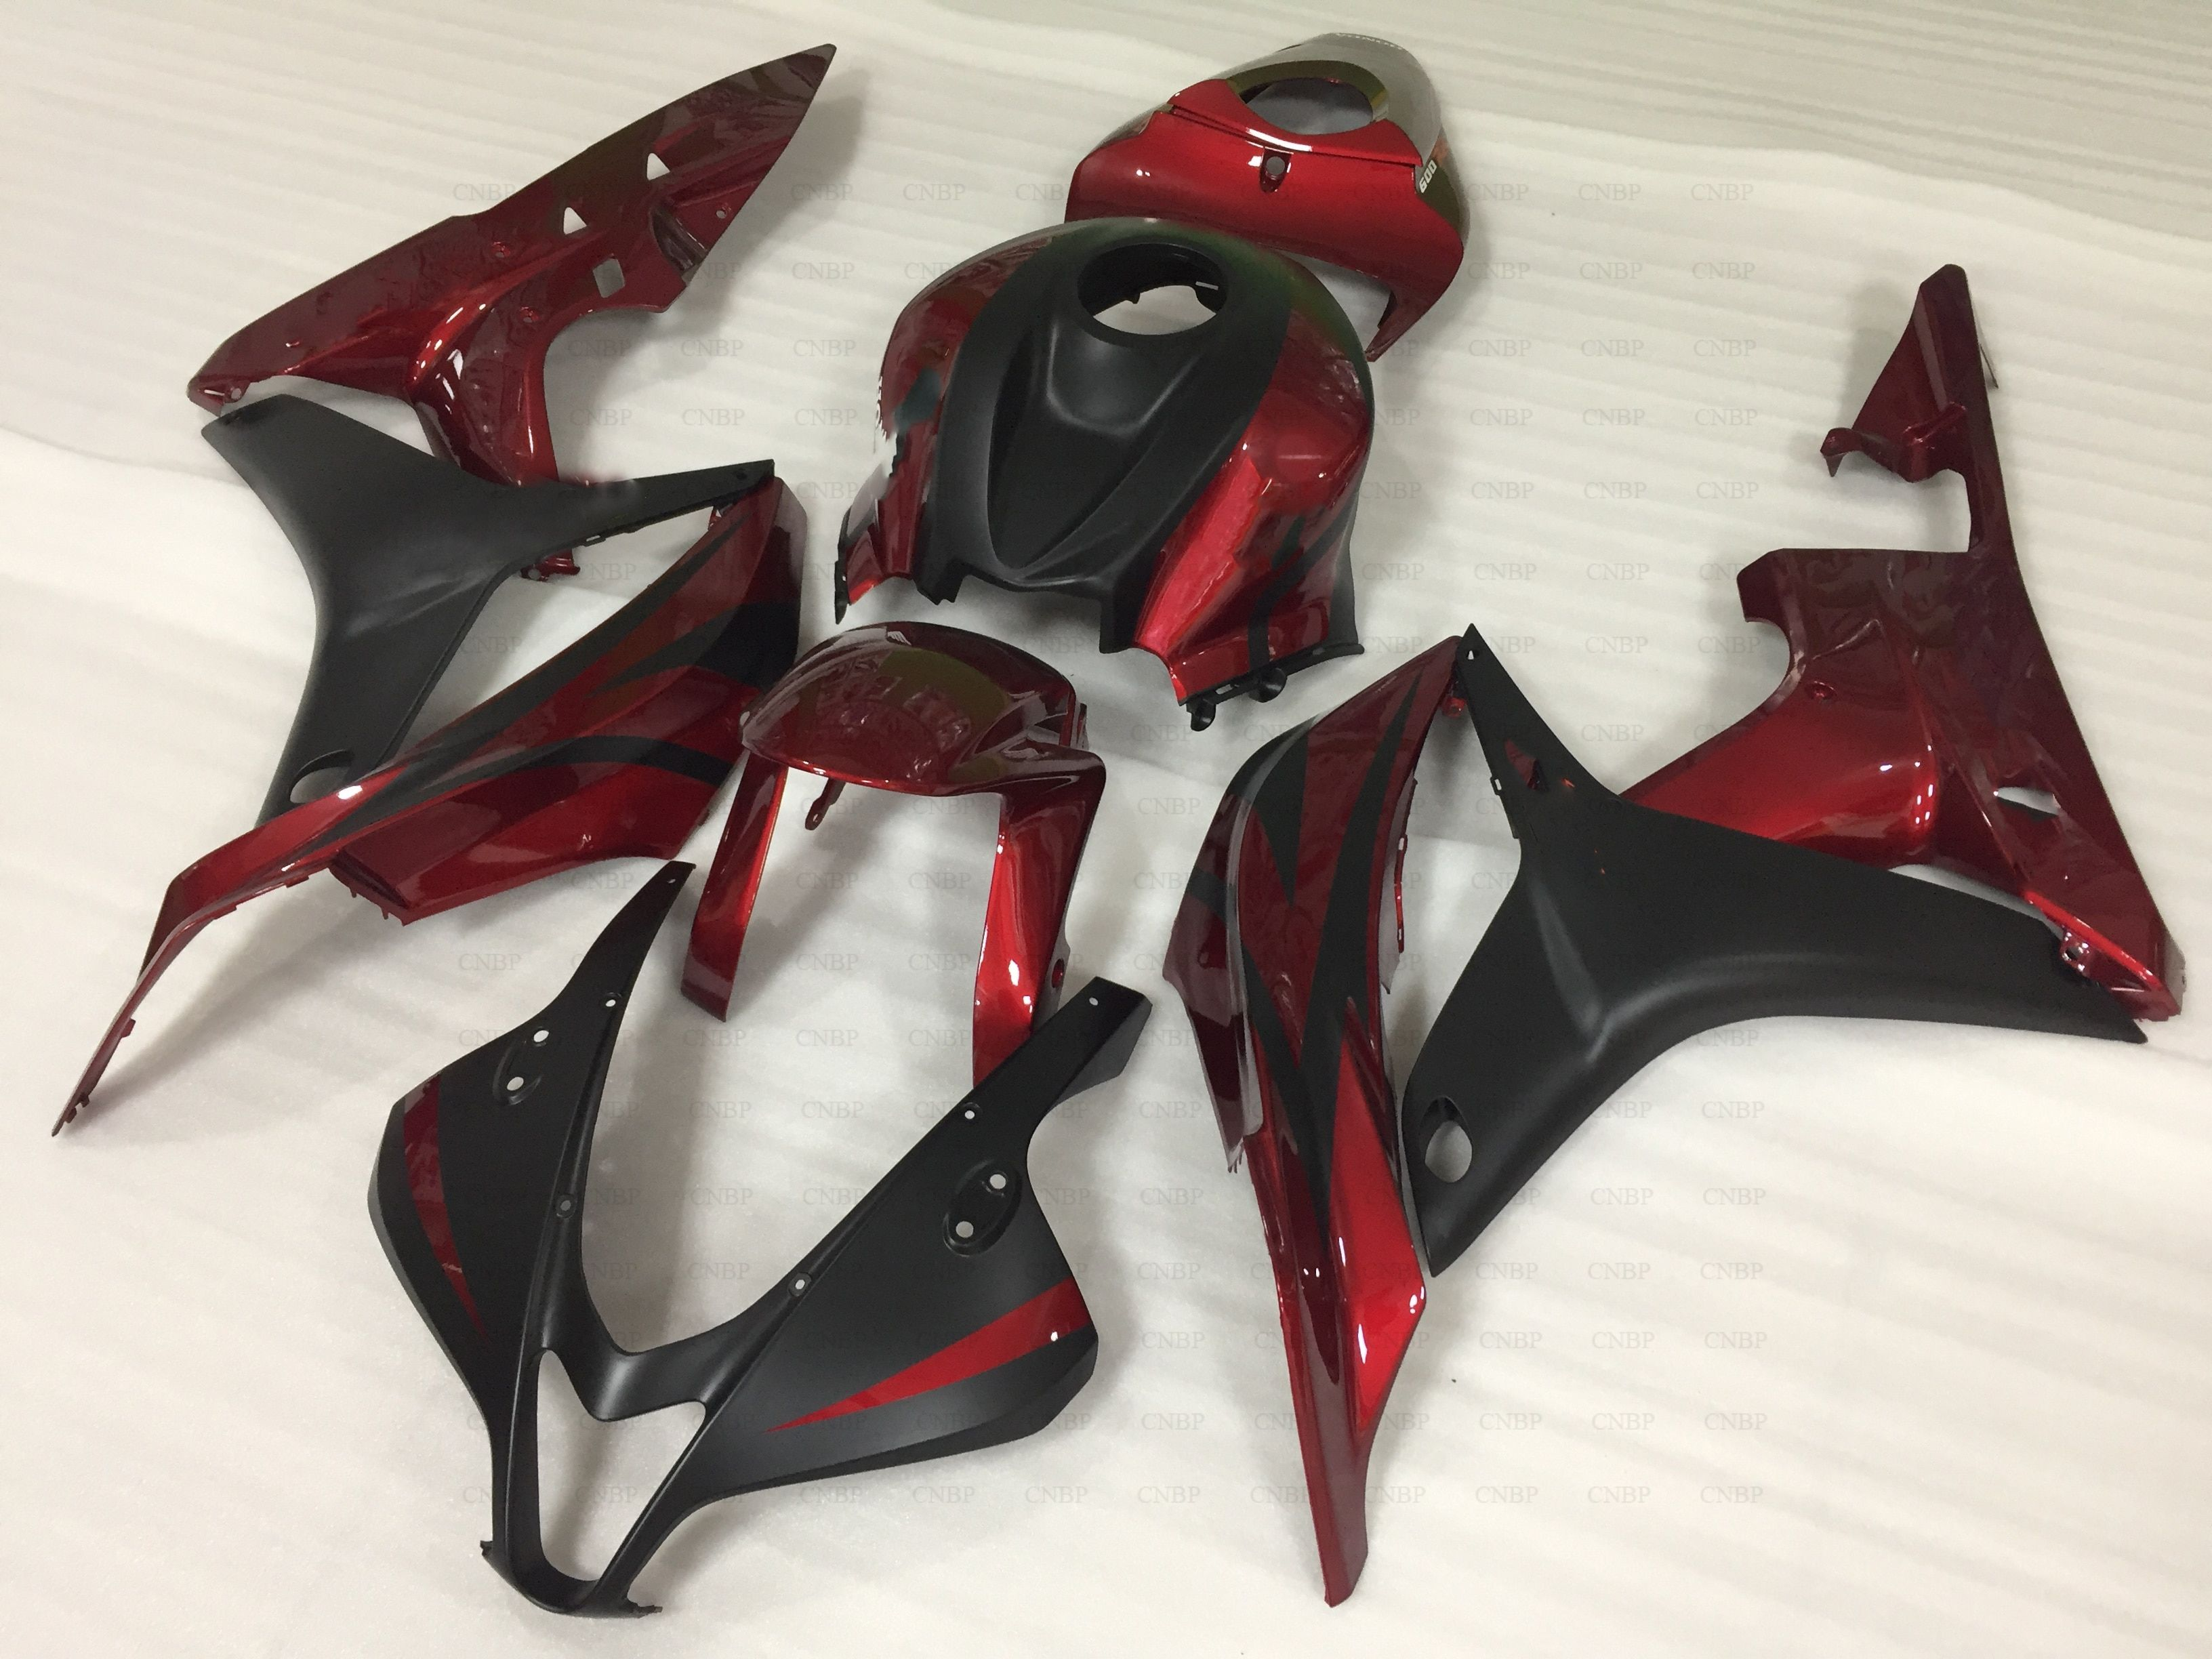 Plastic Fairings for Honda CBR600RR 08 Abs Fairing CBR600 RR 08 2007 - 2008 Black Red Motorcycle Fairing CBR 600 RR 07